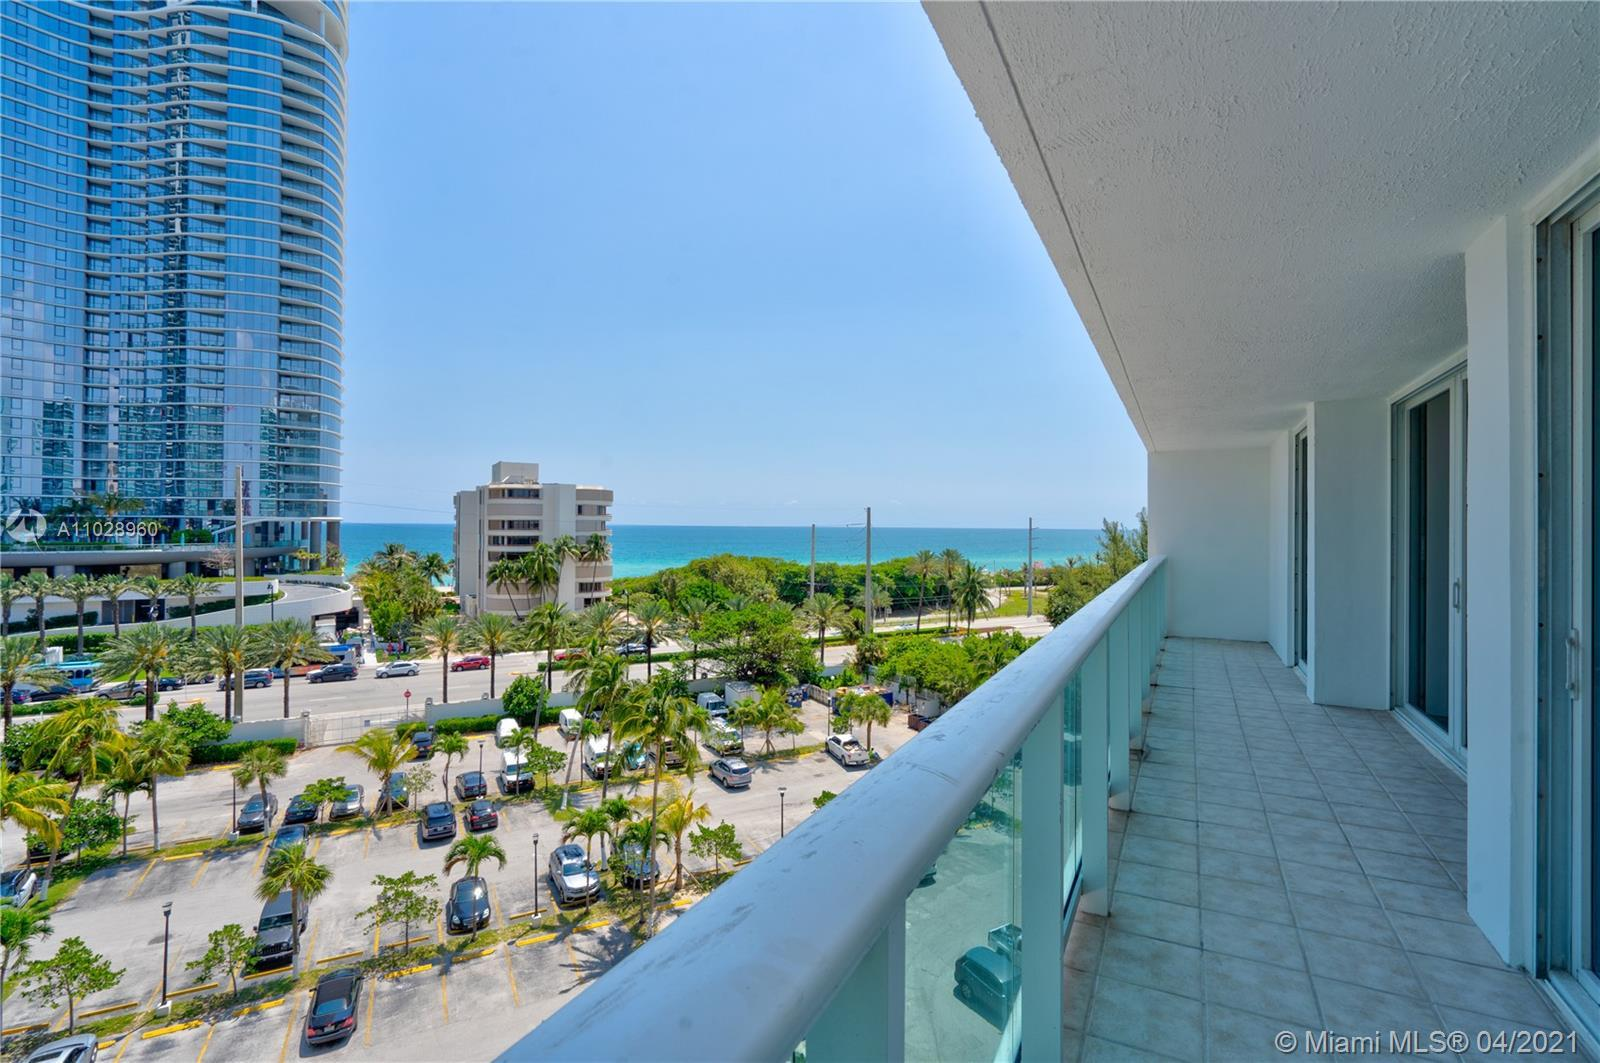 Amazing view from oversize balcony, split floor plan for privacy, spacious 2 bedroom 2 bathrooms, ac